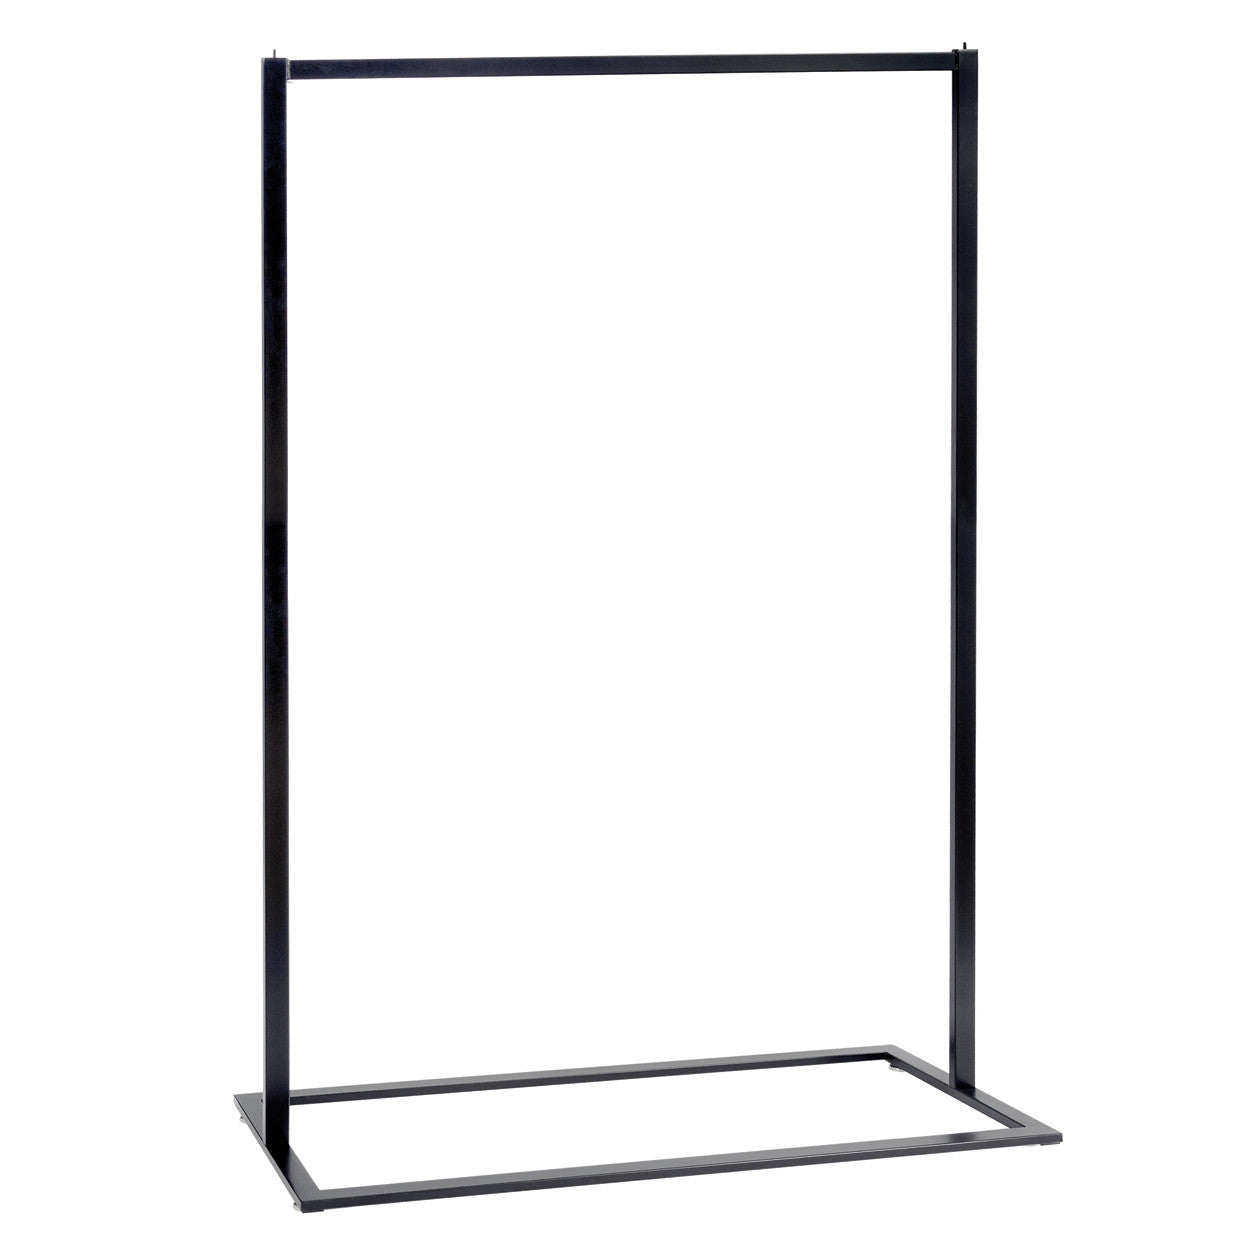 Style Clothes Rack - Single Rail in Black (1200mm W x 1650mm H x 457 mm D)